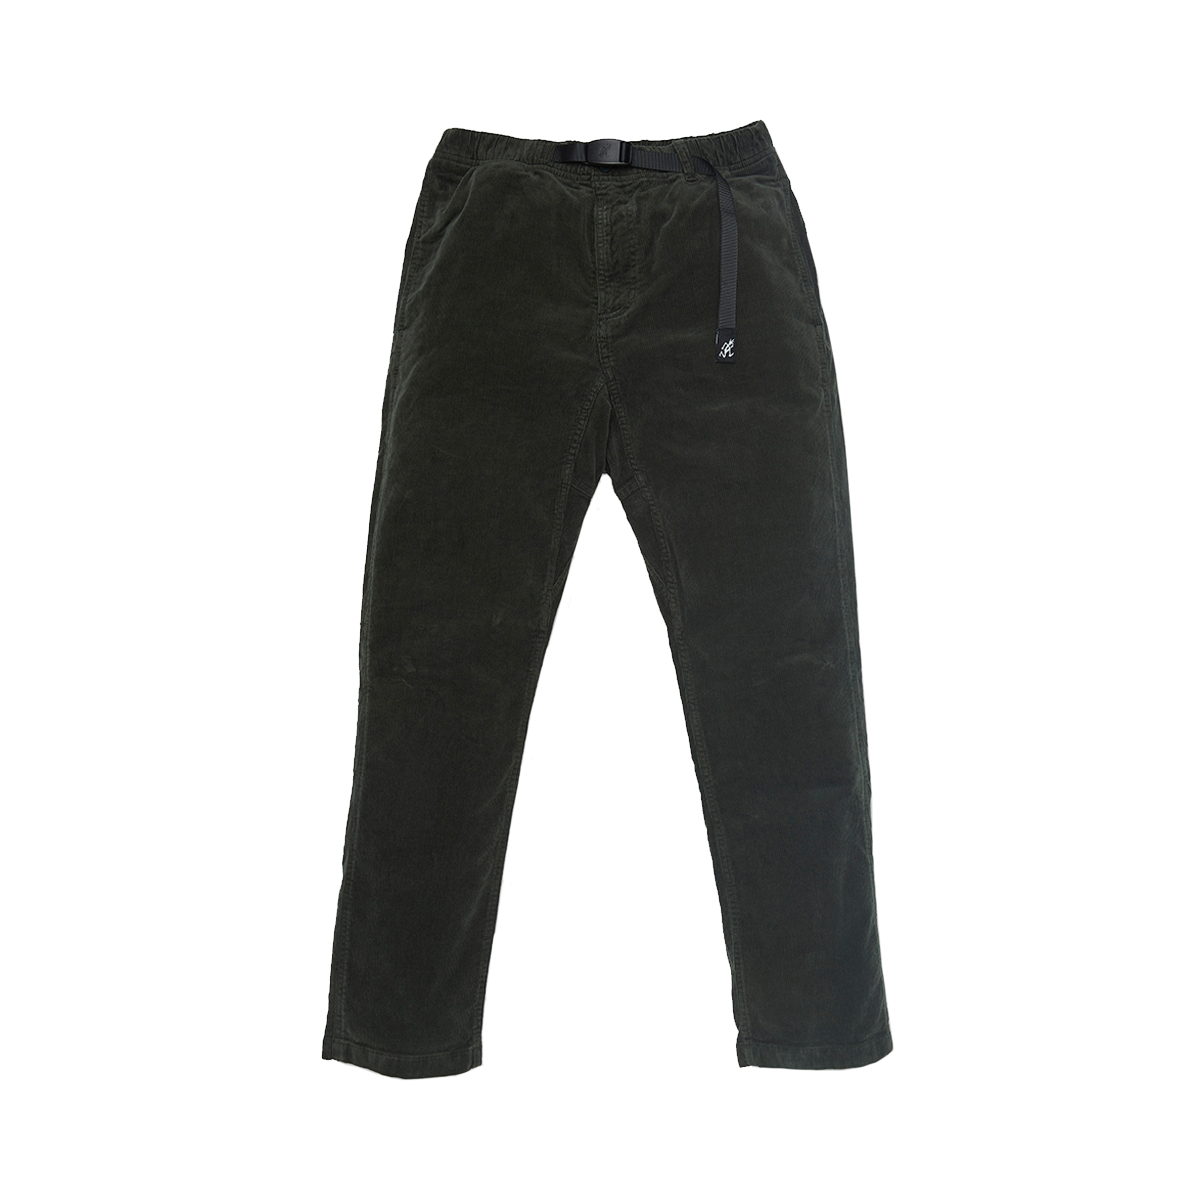 [GRAMICCI] CORDUROY NN-PANTS JUST CUT 'DARK GREEN'